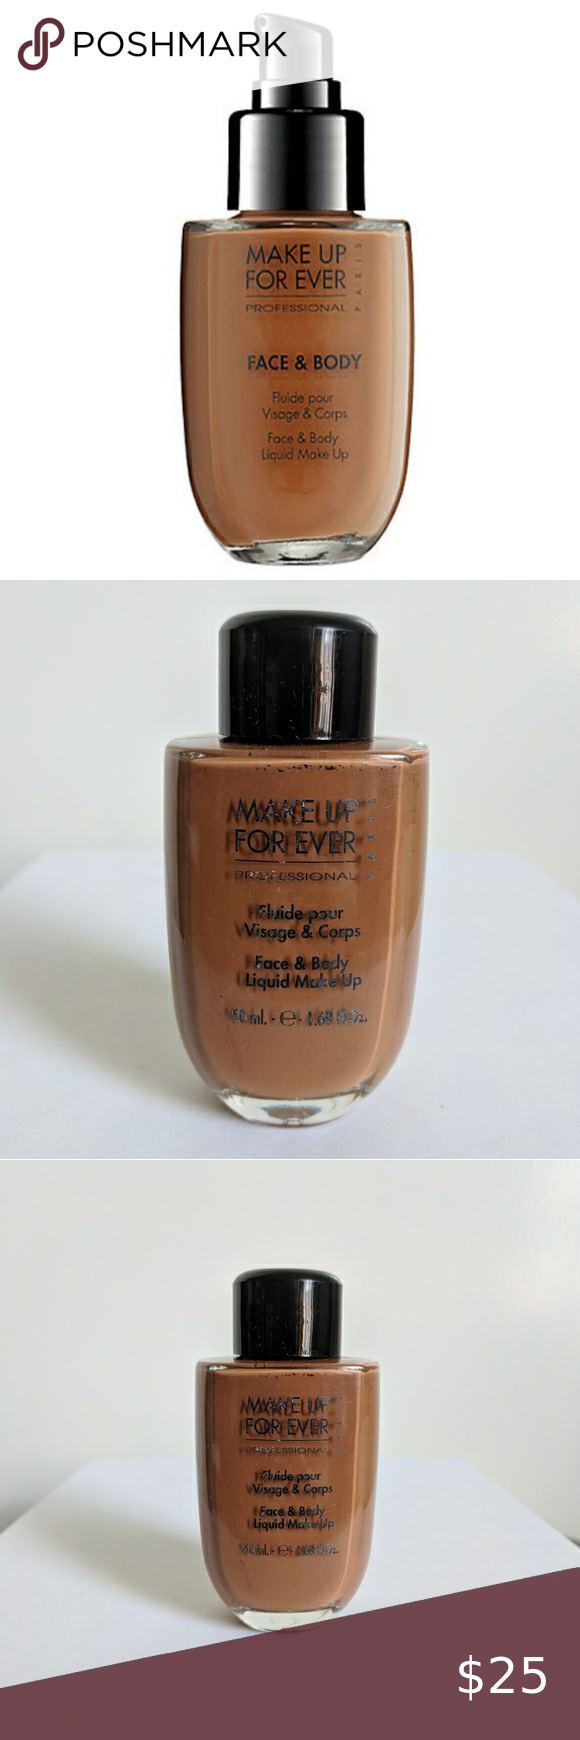 MUFE Makeup For Ever Water Blend Liquid Face Body in 2020